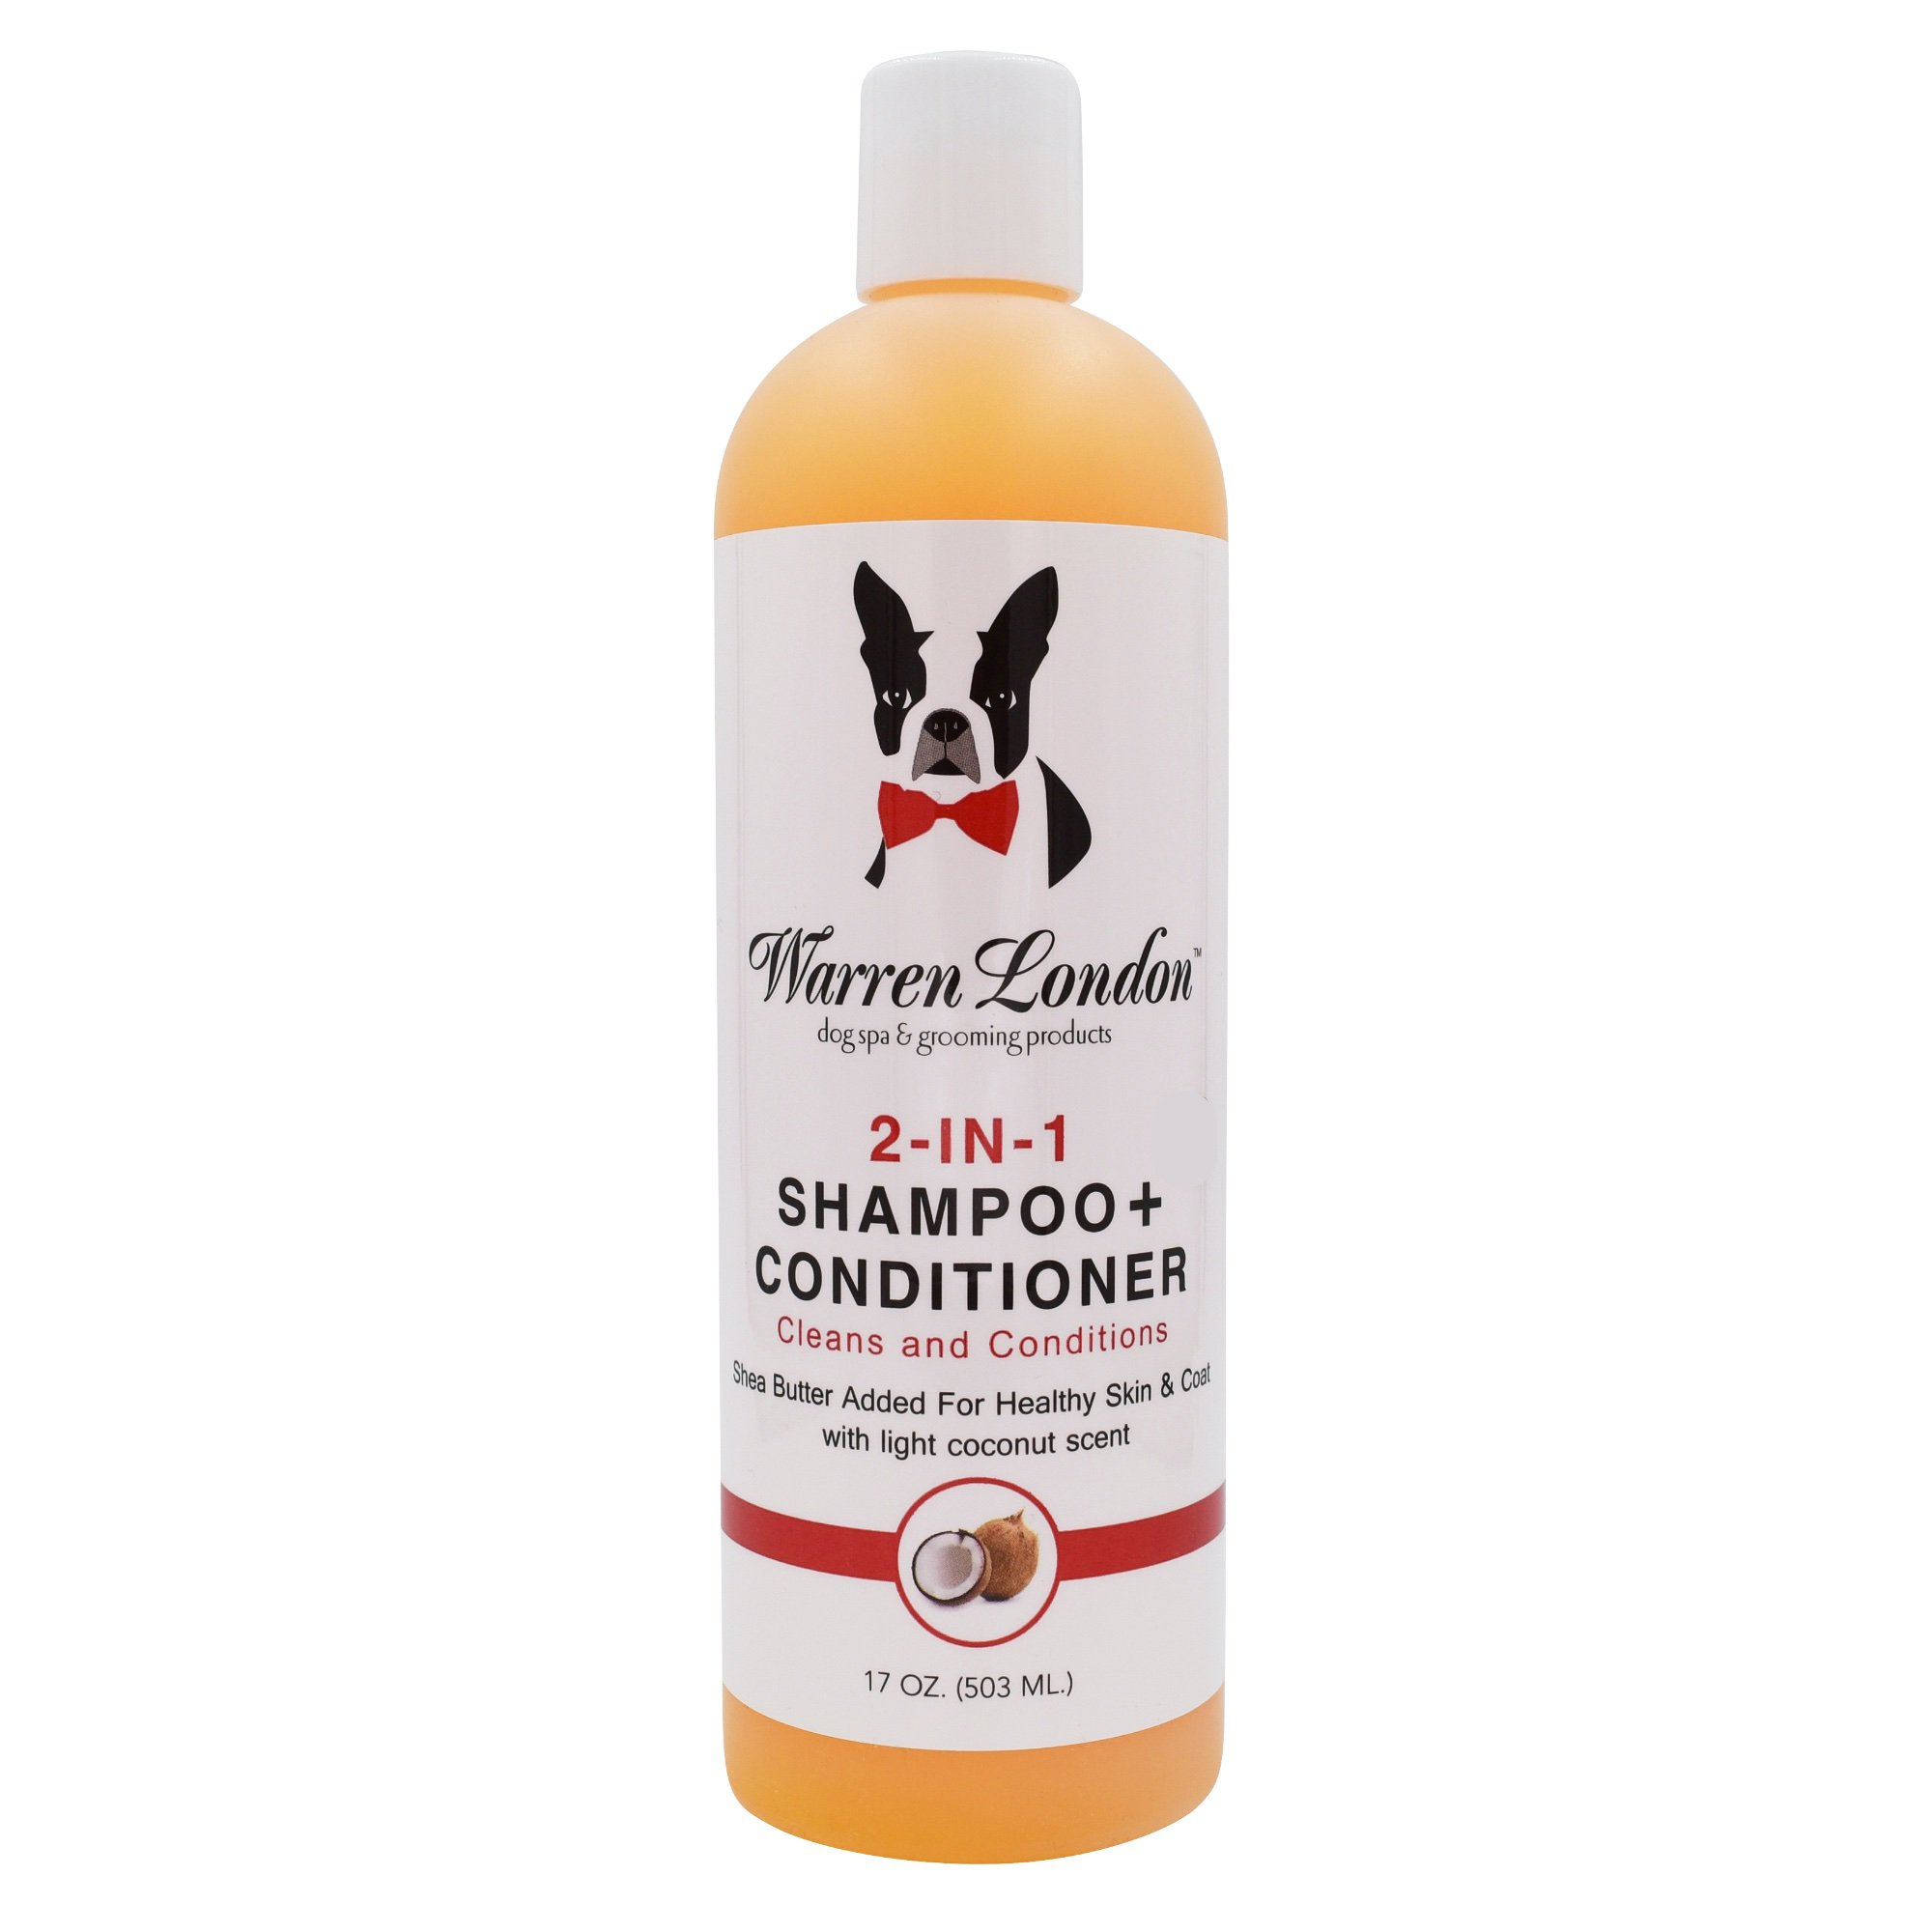 Warren London 2-in-1 Shampoo & Conditioner for Dogs